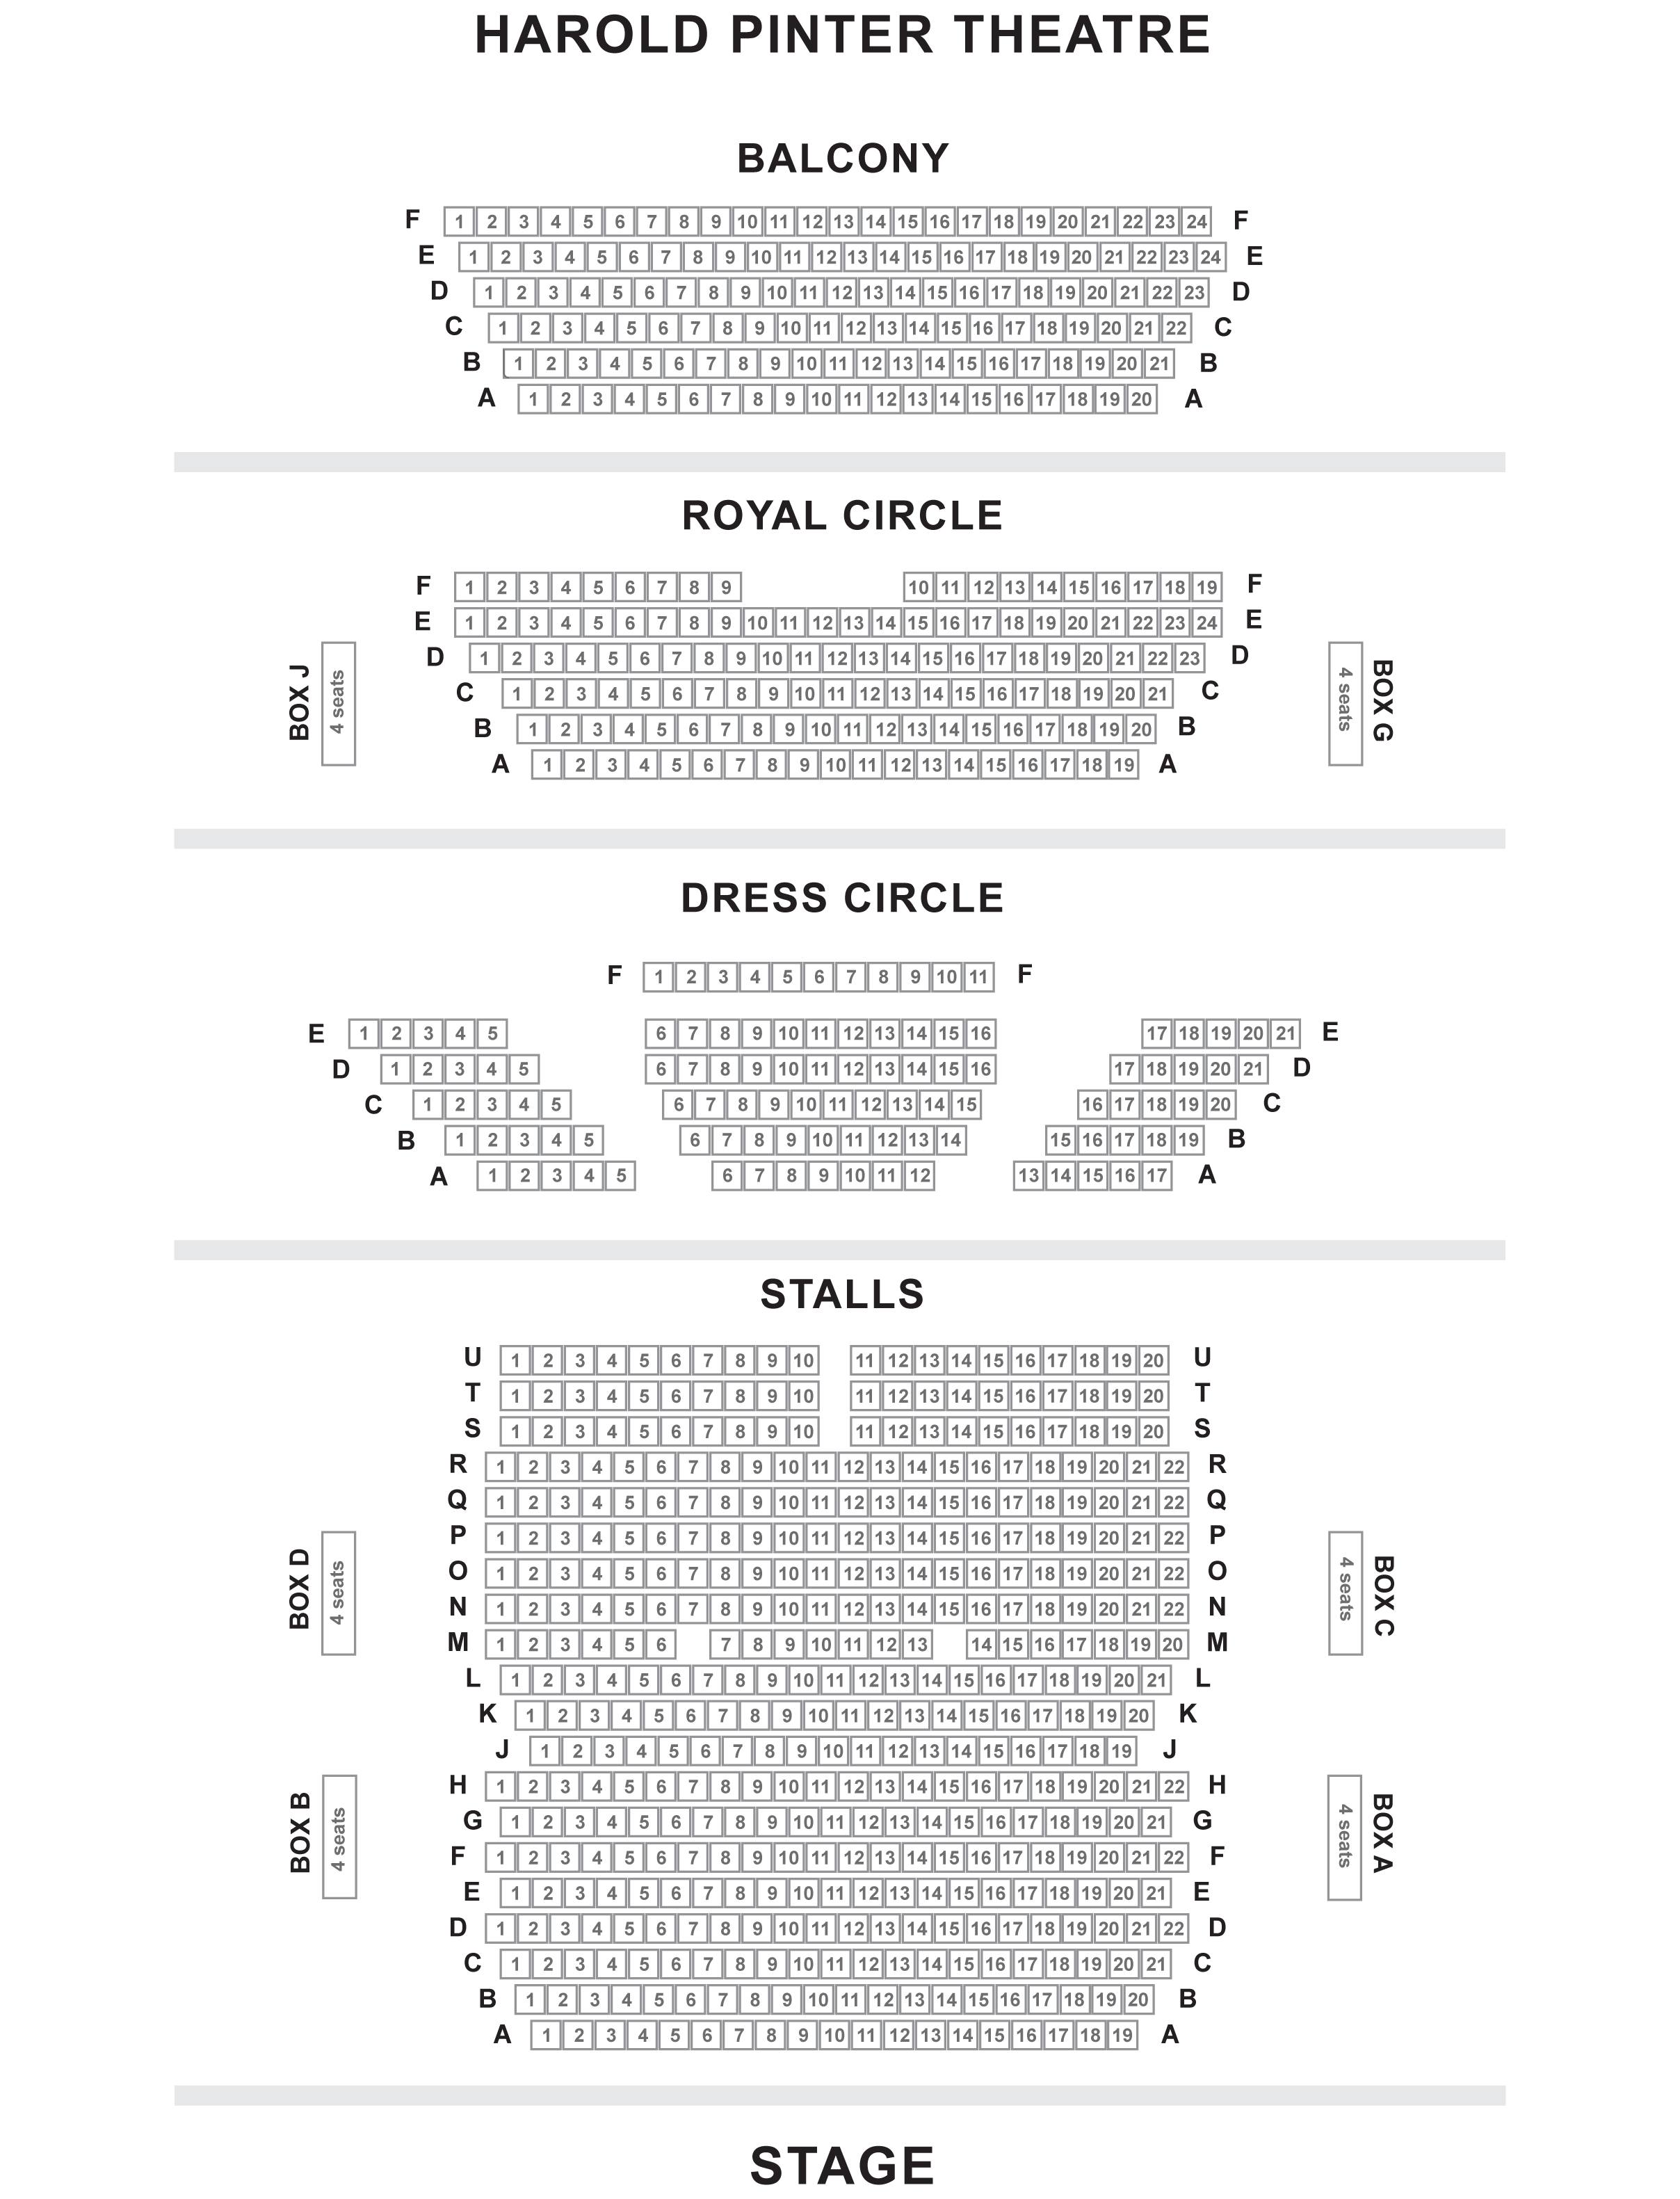 Harold Pinter Theatre seating plan